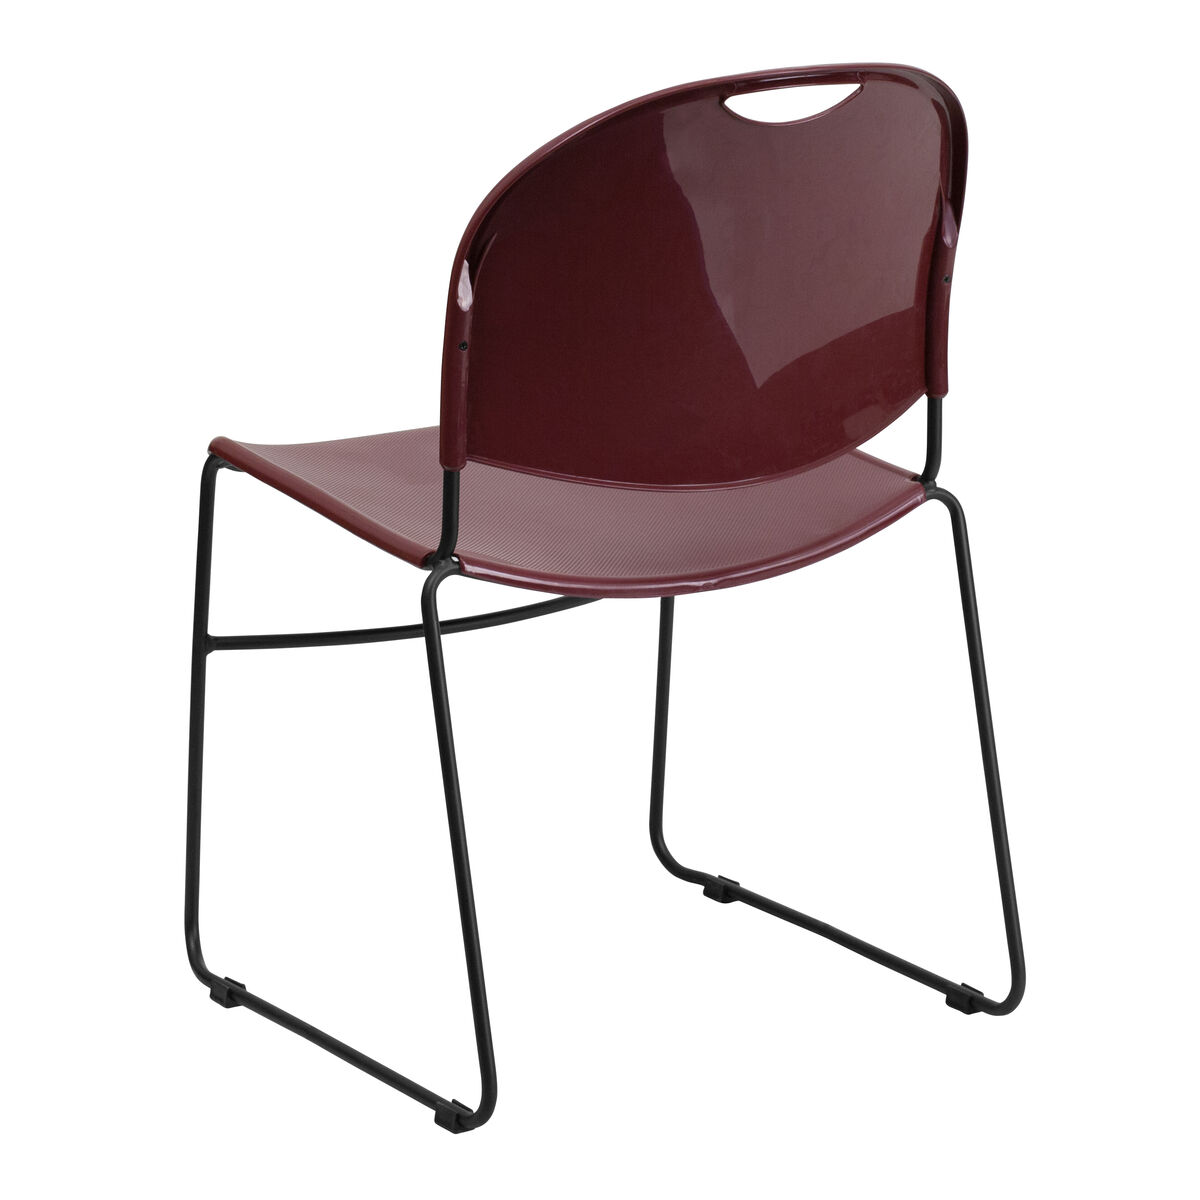 flash furniture hercules series 880 lb capacity burgundy ultra compact stack chair with black. Black Bedroom Furniture Sets. Home Design Ideas